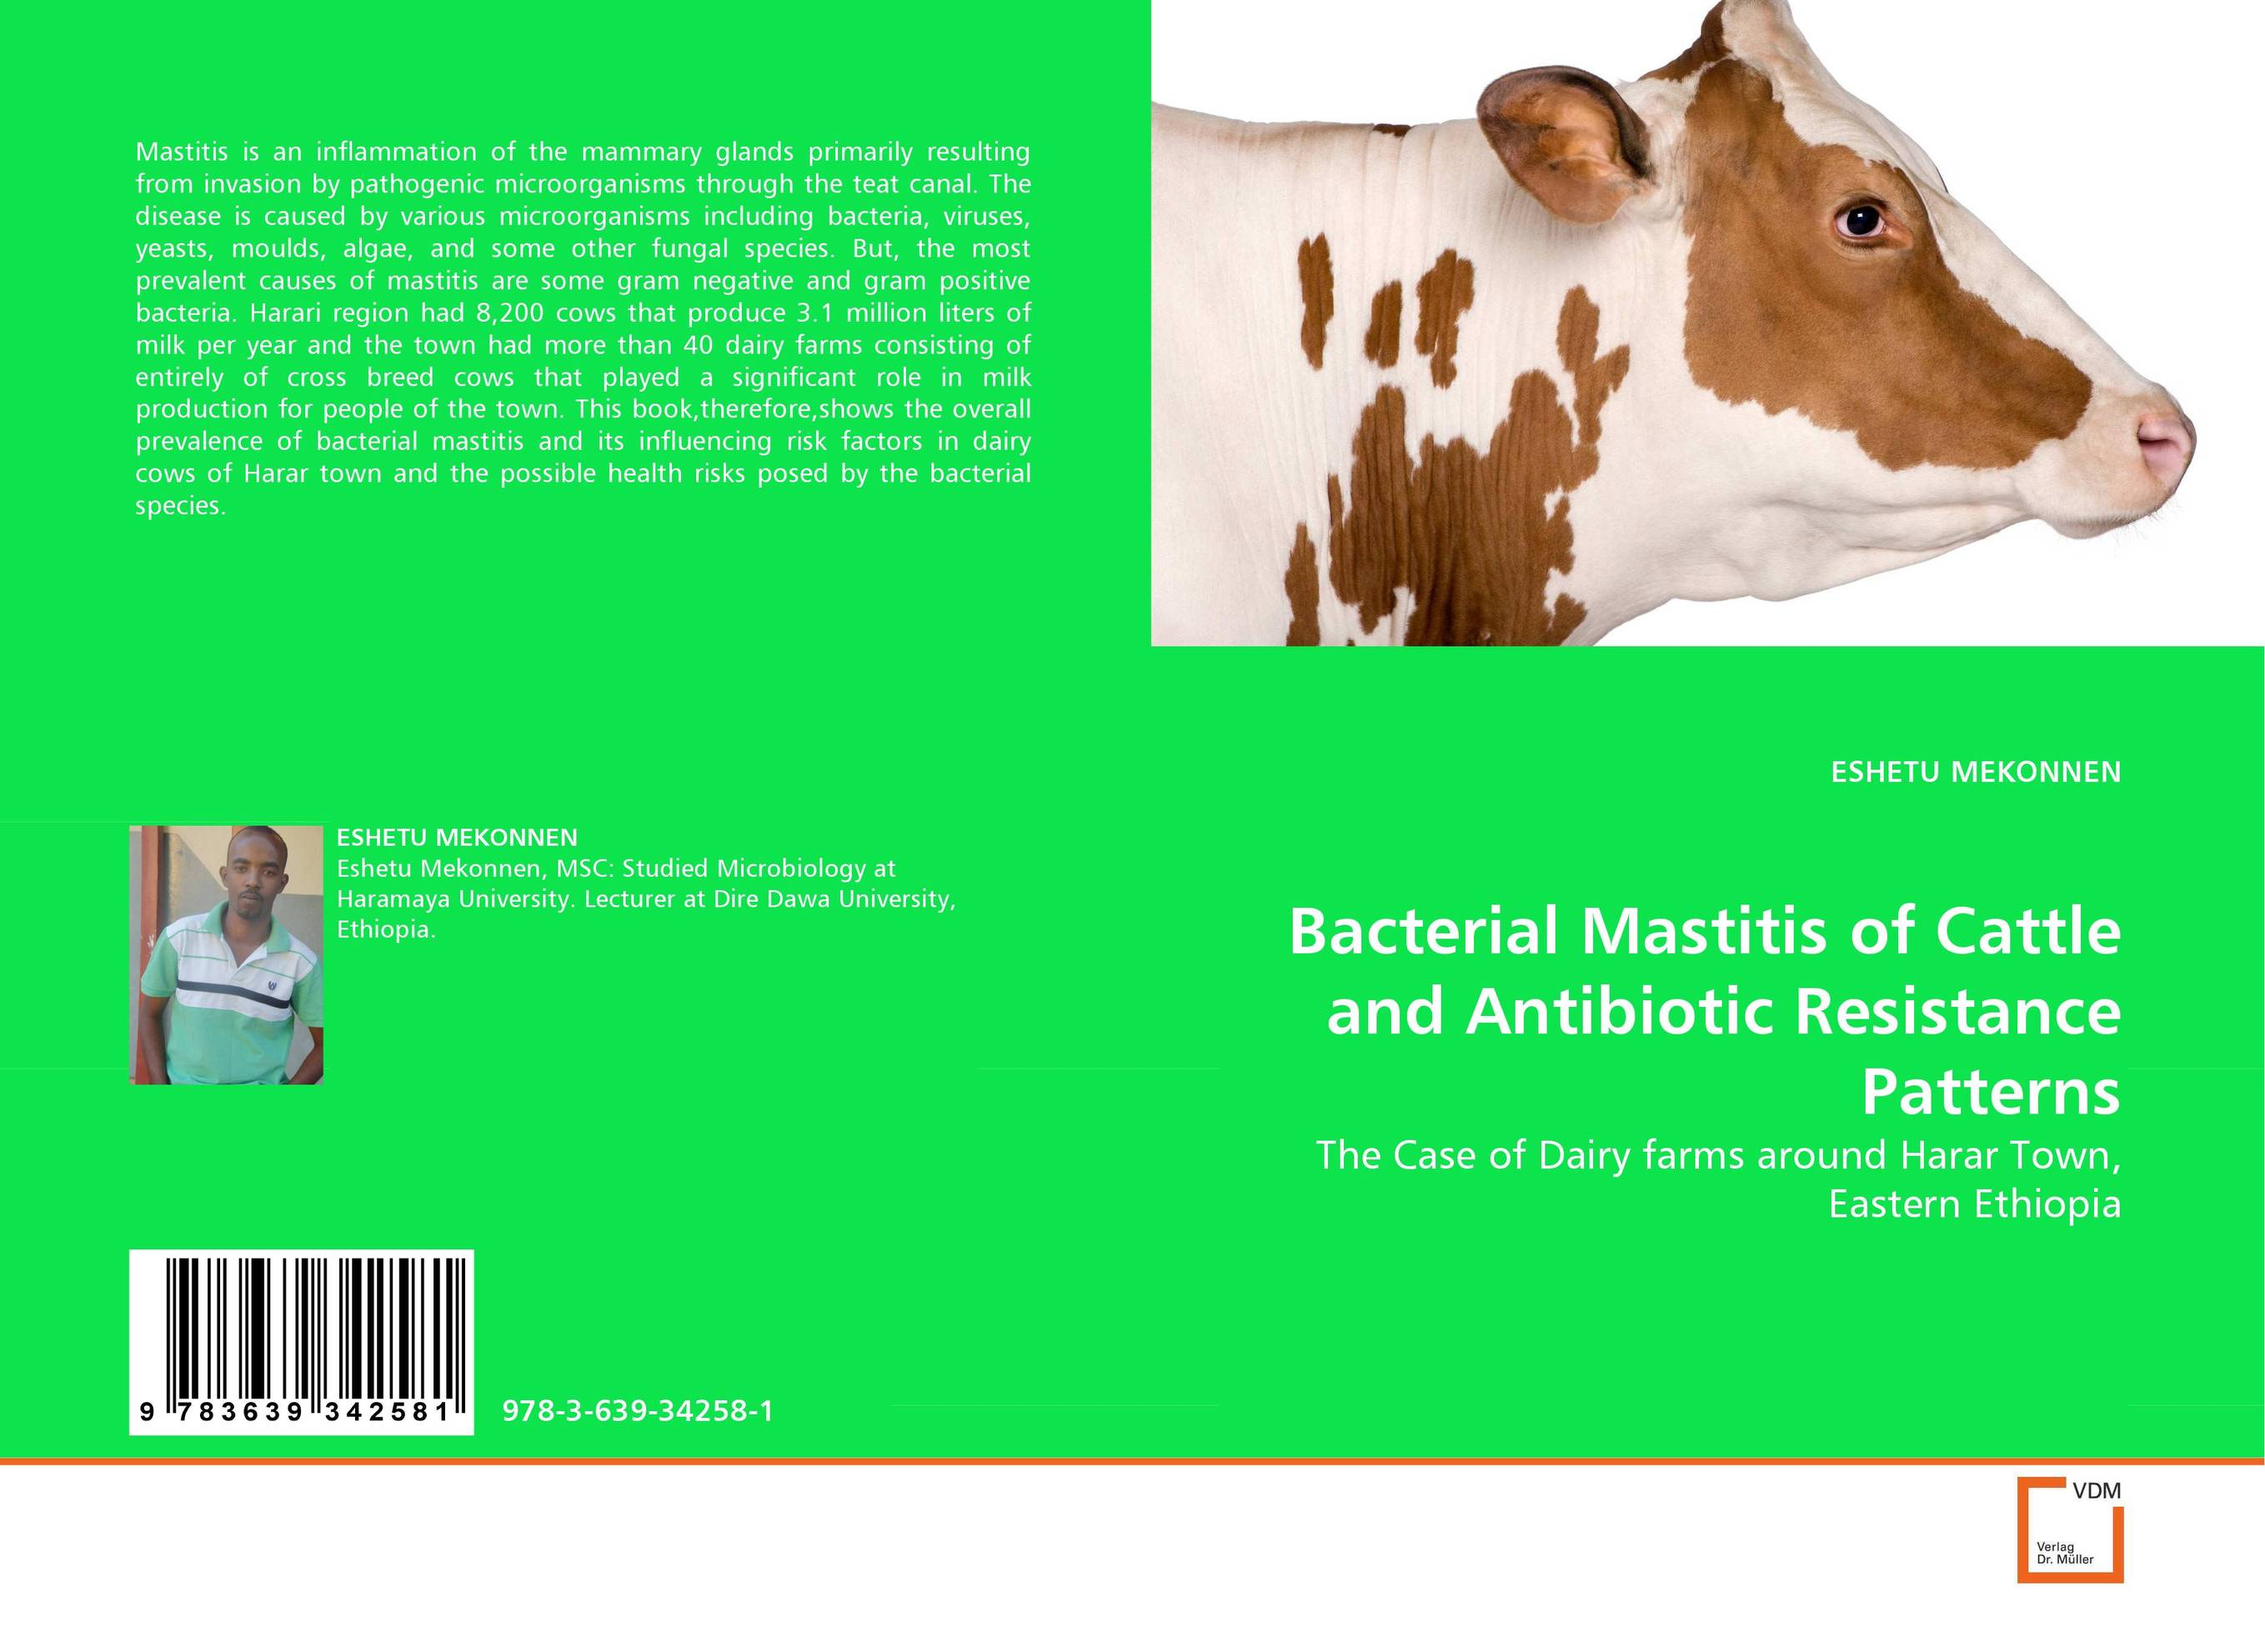 Bacterial Mastitis of Cattle and Antibiotic Resistance Patterns claw disorders in dairy cows under smallholder zero grazing units